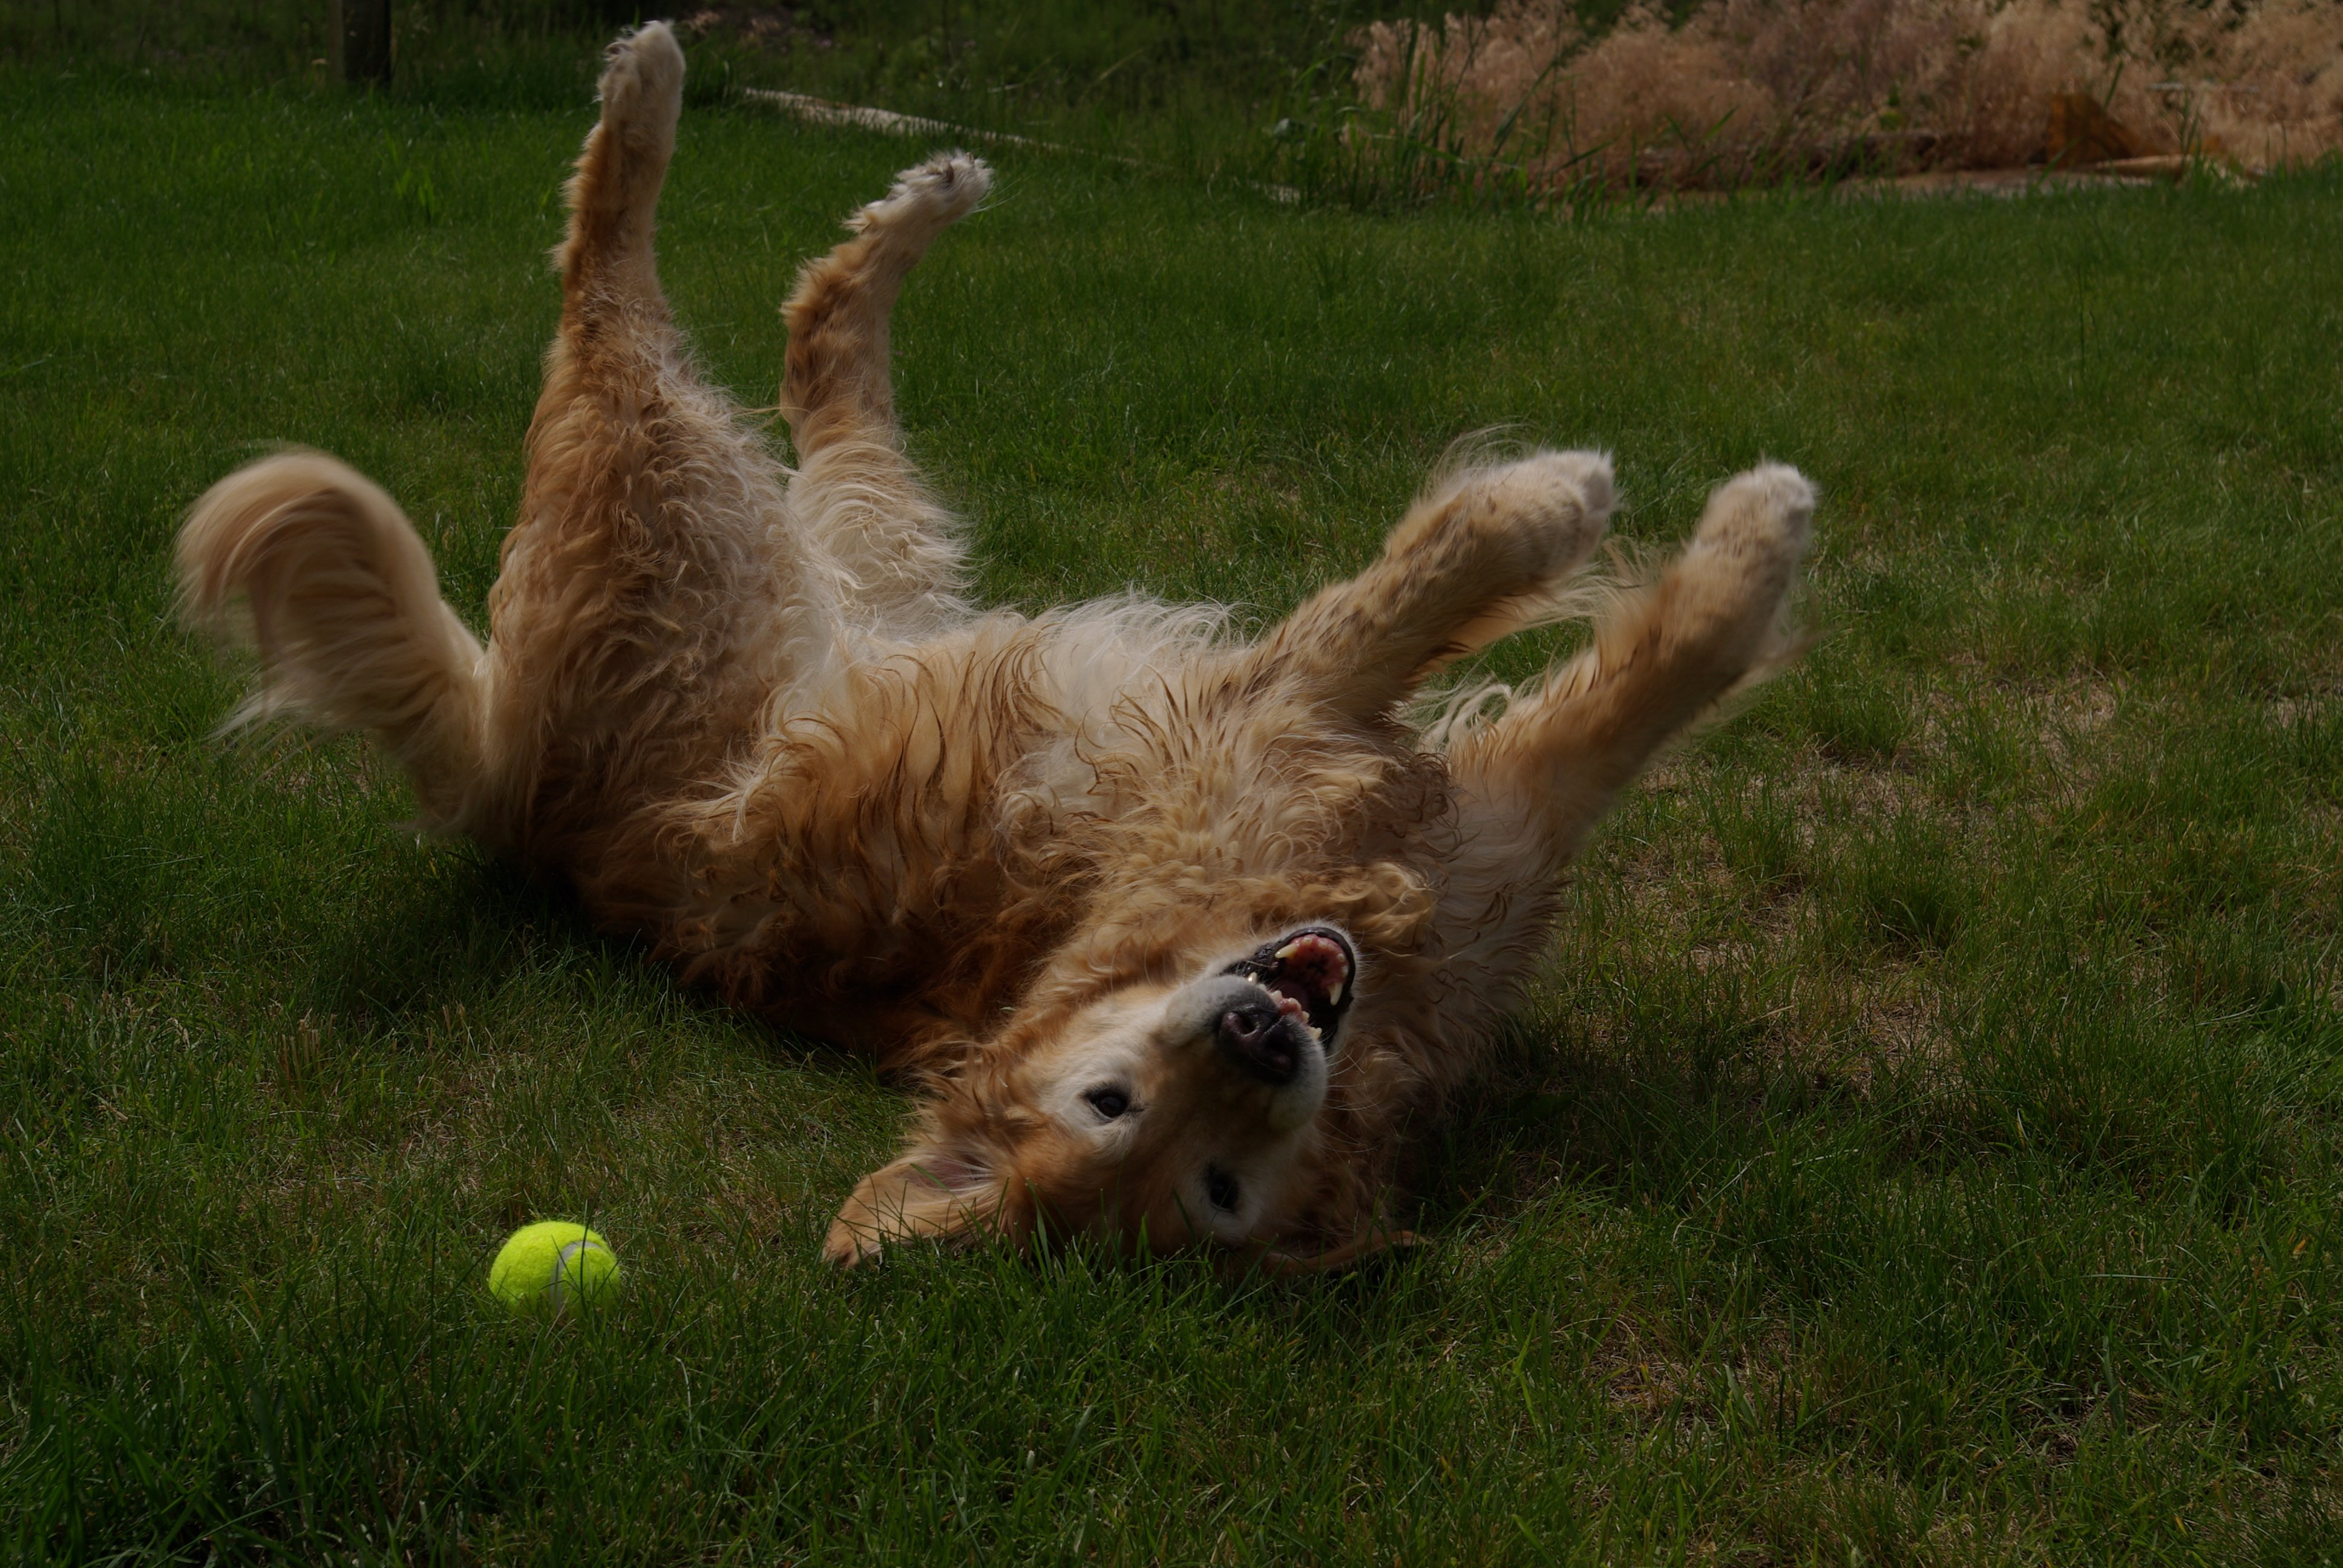 Playful dog rolling over in the grass